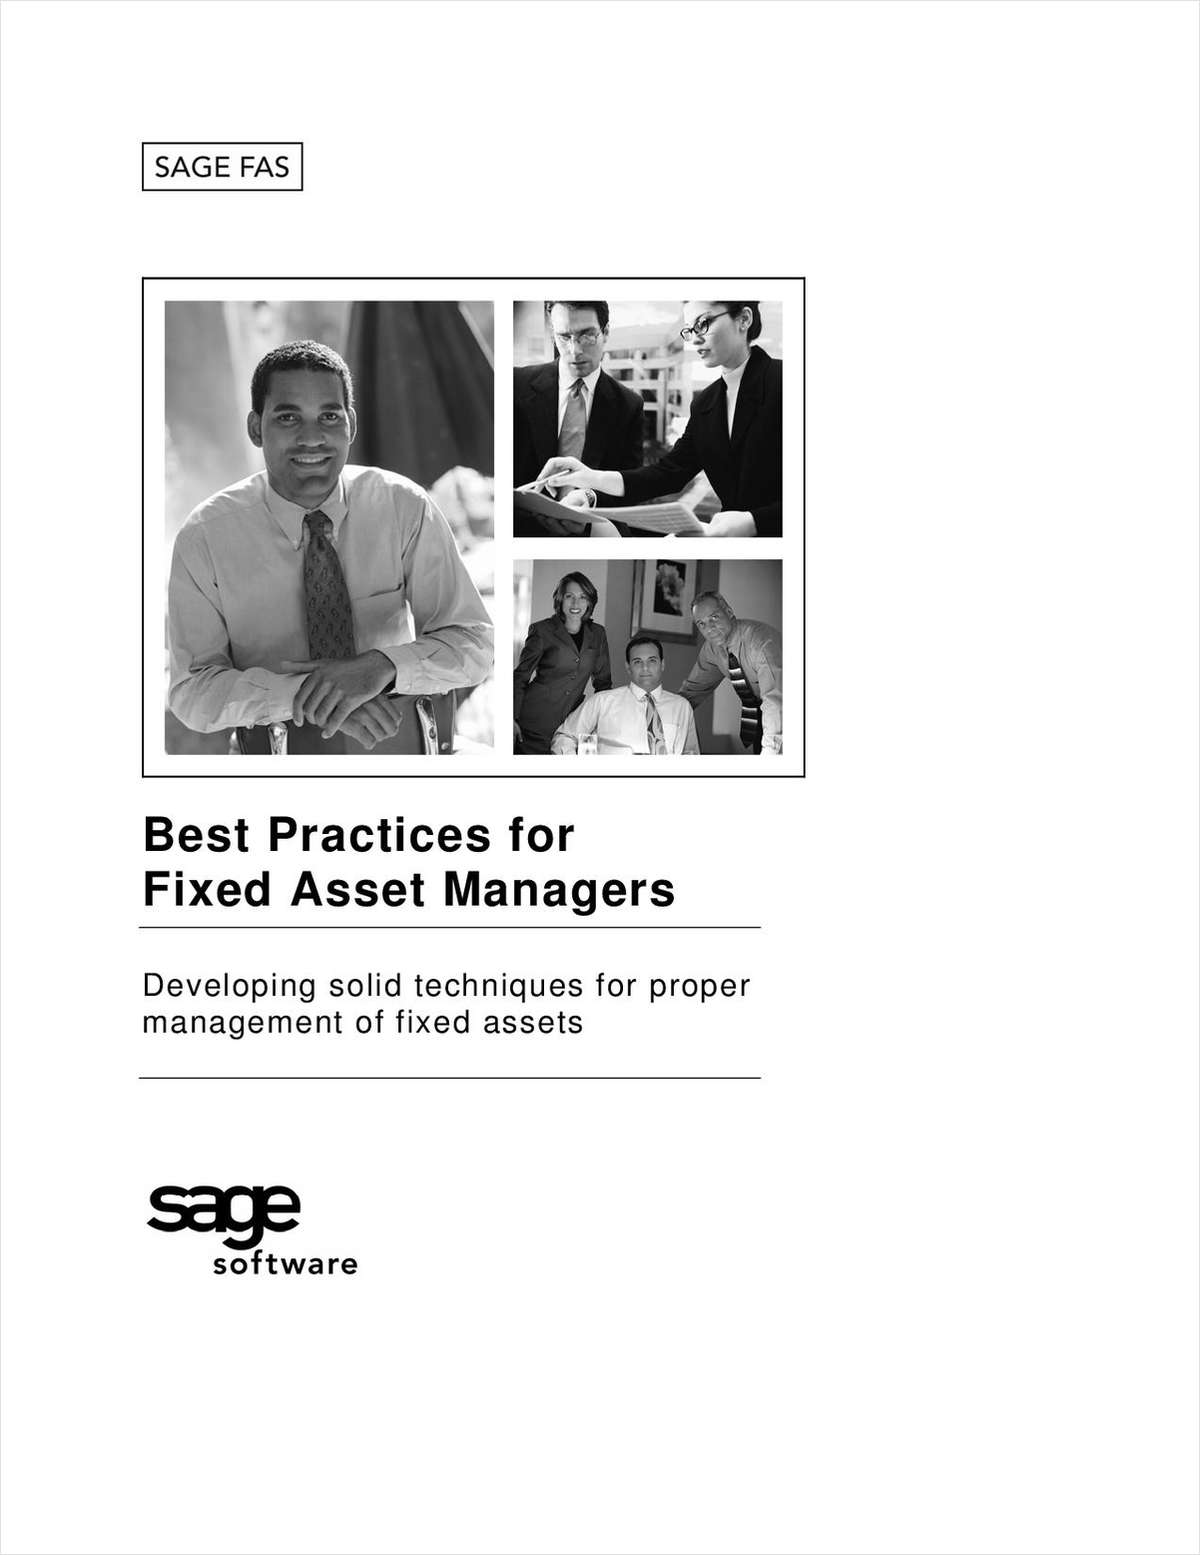 Best Practices for Fixed Asset Managers: Developing Solid Techniques for Proper Management of Fixed Assets